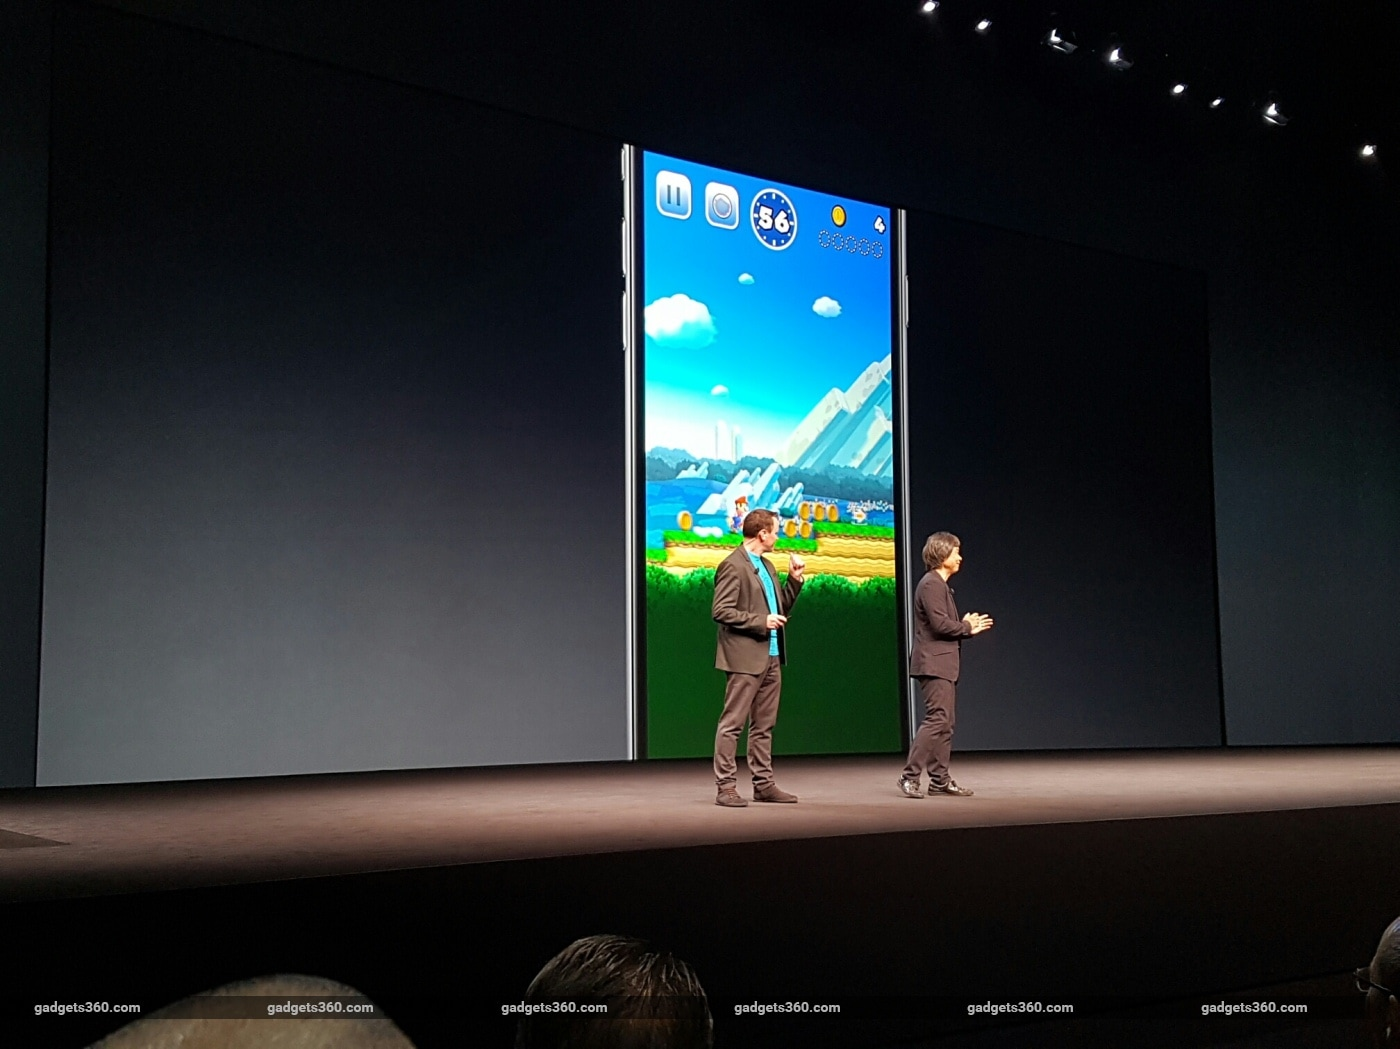 Nintendo Announces Super Mario Run for iOS | Technology News